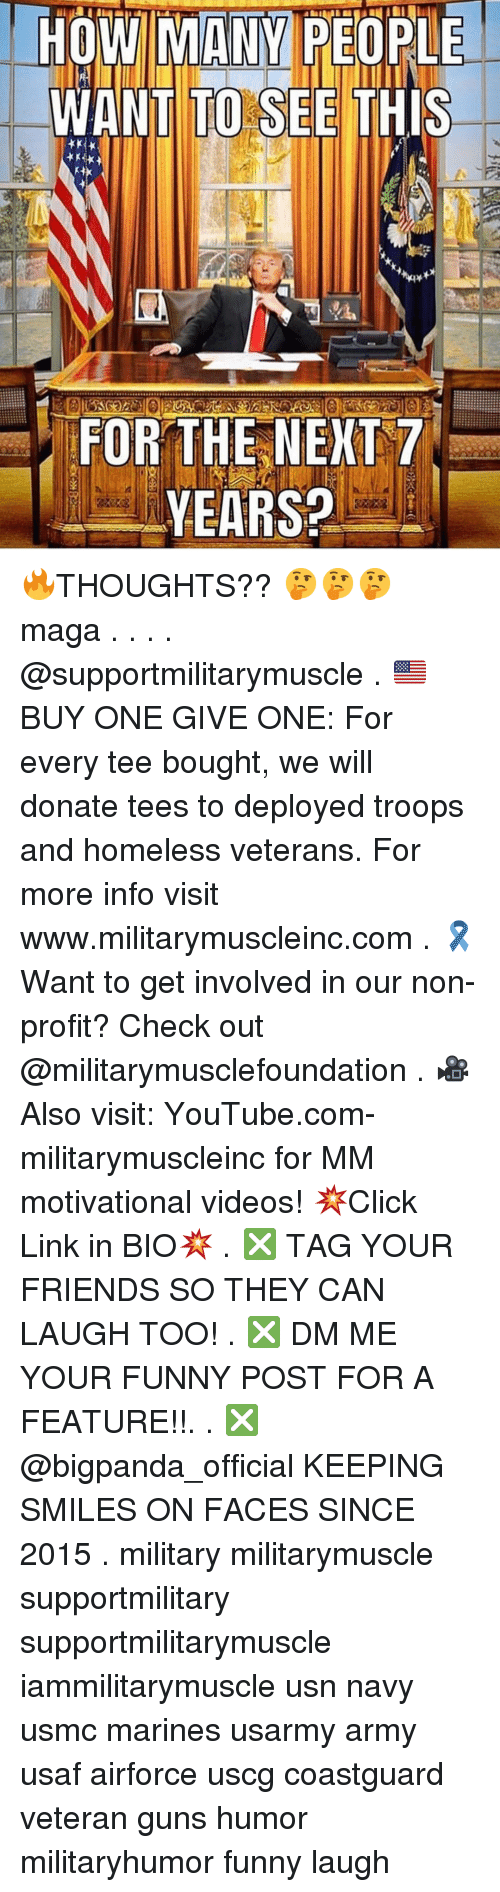 usaf: HOW MANY PEOPLE  WANT TO SEE THIS  K1  FOR THEI EXT 7  YEARS? 🔥THOUGHTS?? 🤔🤔🤔 maga . . . . @supportmilitarymuscle . 🇺🇸BUY ONE GIVE ONE: For every tee bought, we will donate tees to deployed troops and homeless veterans. For more info visit www.militarymuscleinc.com . 🎗Want to get involved in our non-profit? Check out @militarymusclefoundation . 🎥Also visit: YouTube.com-militarymuscleinc for MM motivational videos! 💥Click Link in BIO💥 . ❎ TAG YOUR FRIENDS SO THEY CAN LAUGH TOO! . ❎ DM ME YOUR FUNNY POST FOR A FEATURE!!. . ❎ @bigpanda_official KEEPING SMILES ON FACES SINCE 2015 . military militarymuscle supportmilitary supportmilitarymuscle iammilitarymuscle usn navy usmc marines usarmy army usaf airforce uscg coastguard veteran guns humor militaryhumor funny laugh